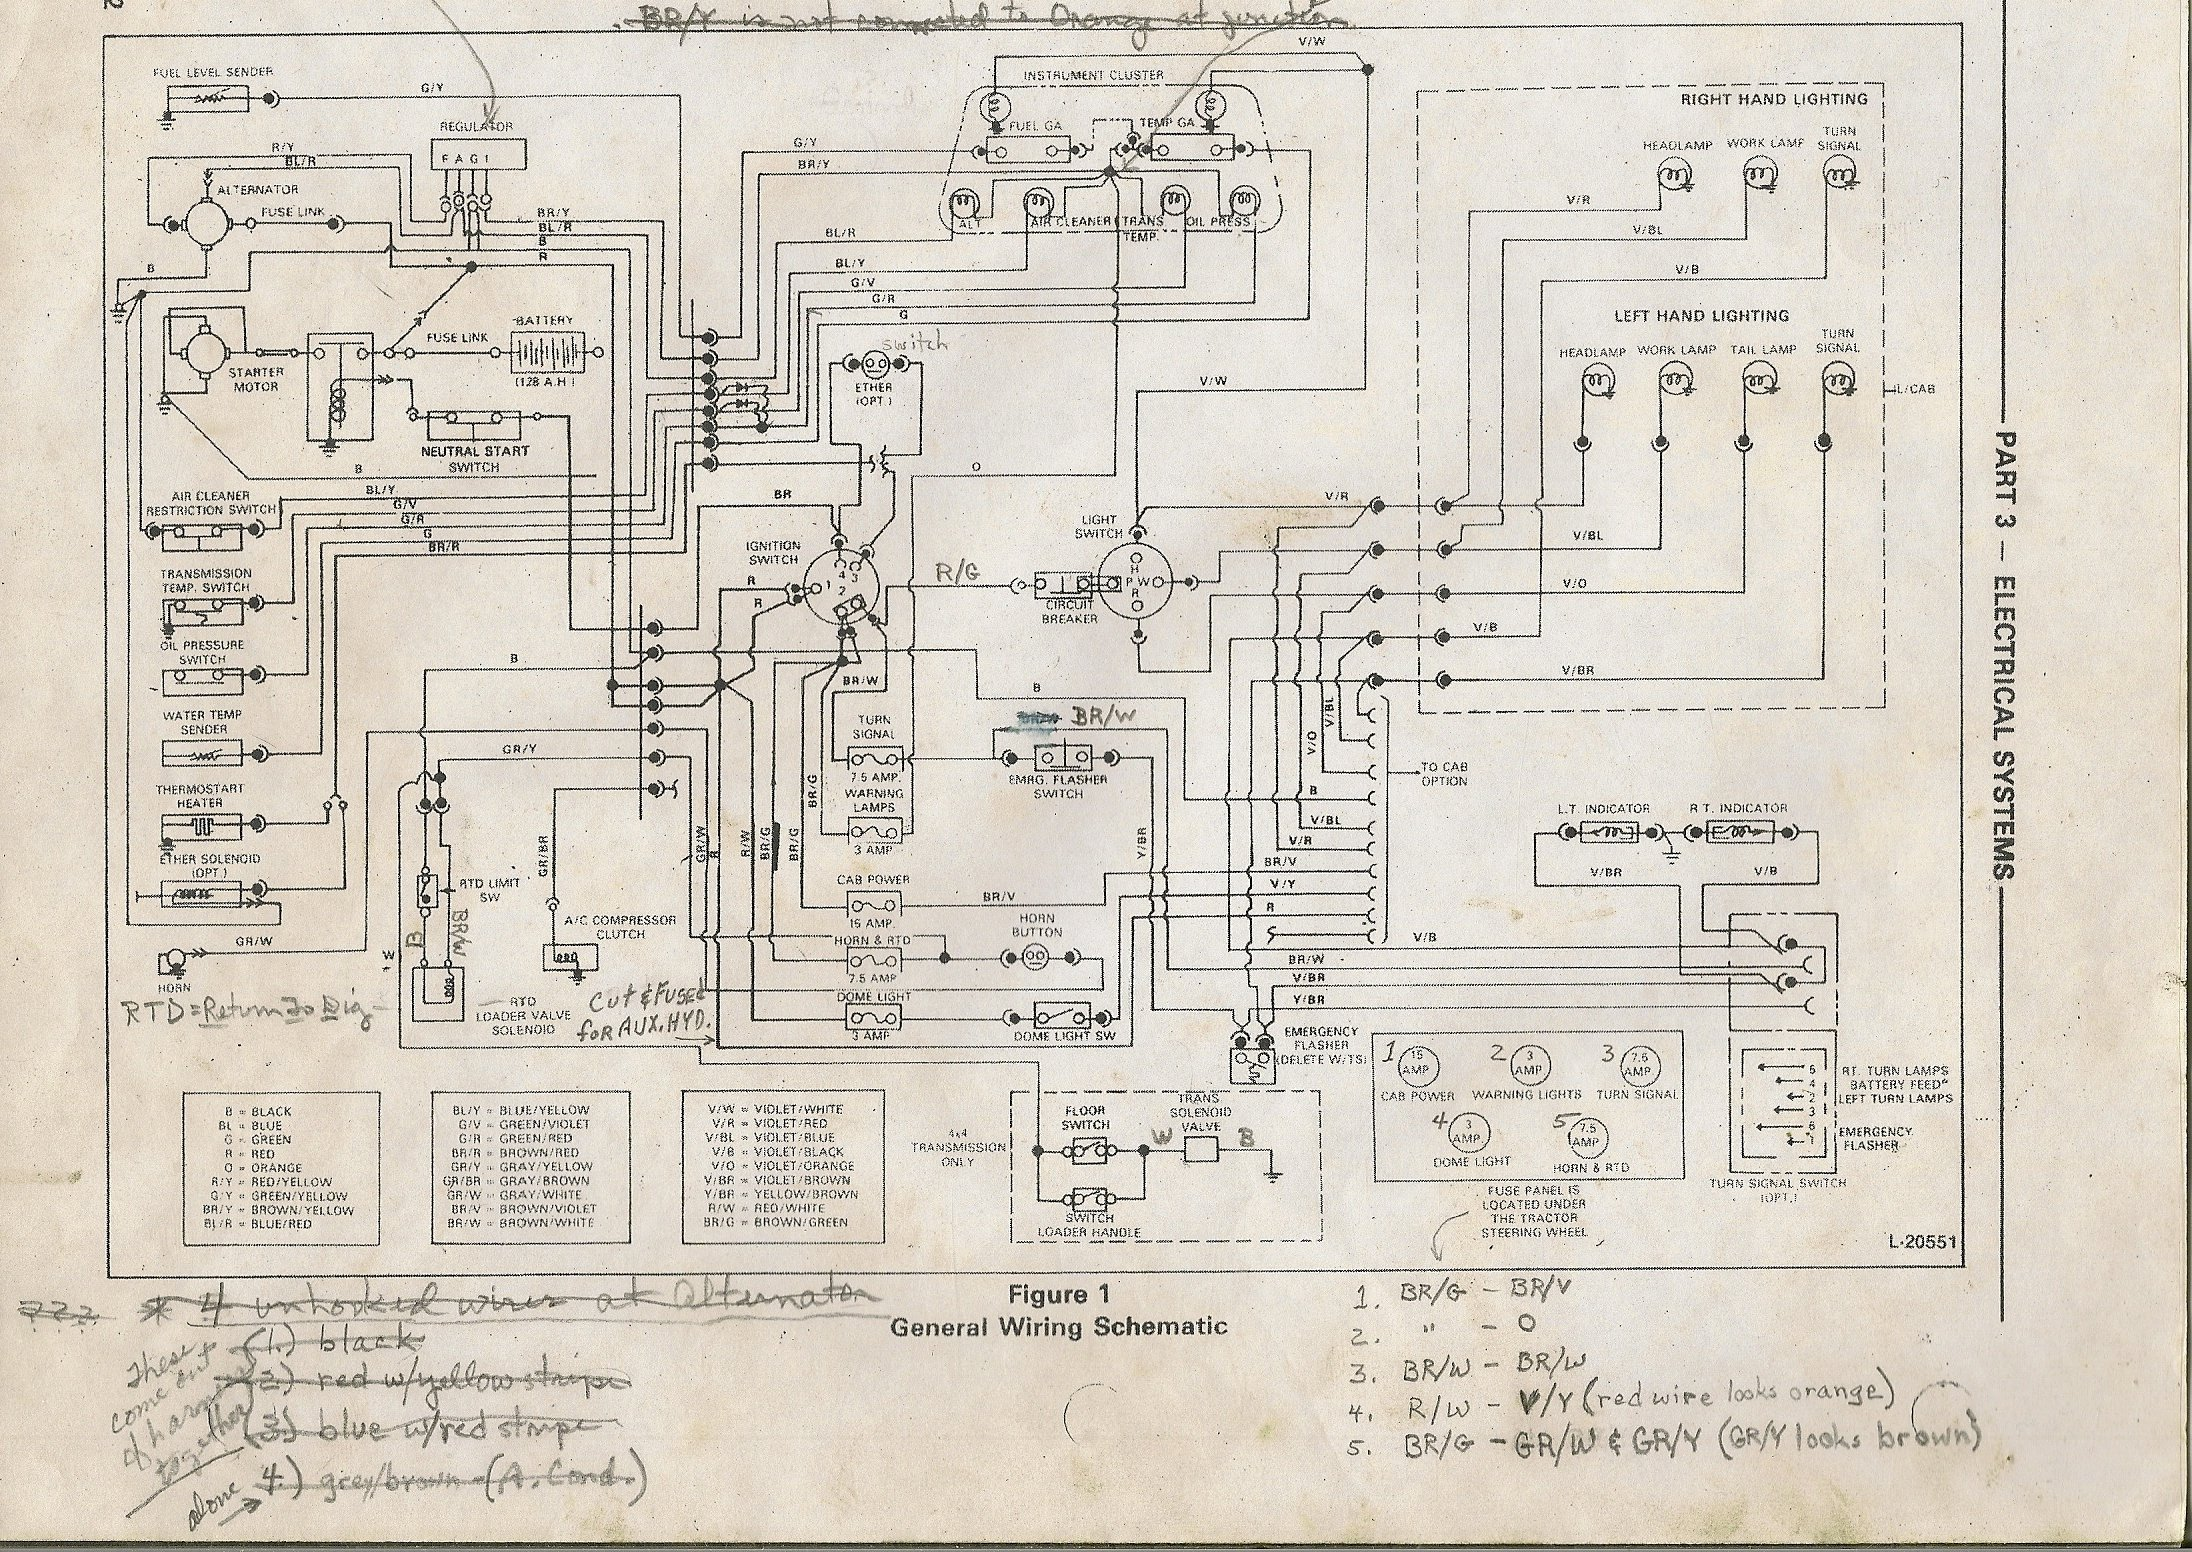 Diagram Ford 655c Wiring Diagram Full Version Hd Quality Wiring Diagram Diagramnixg Seagullsully It